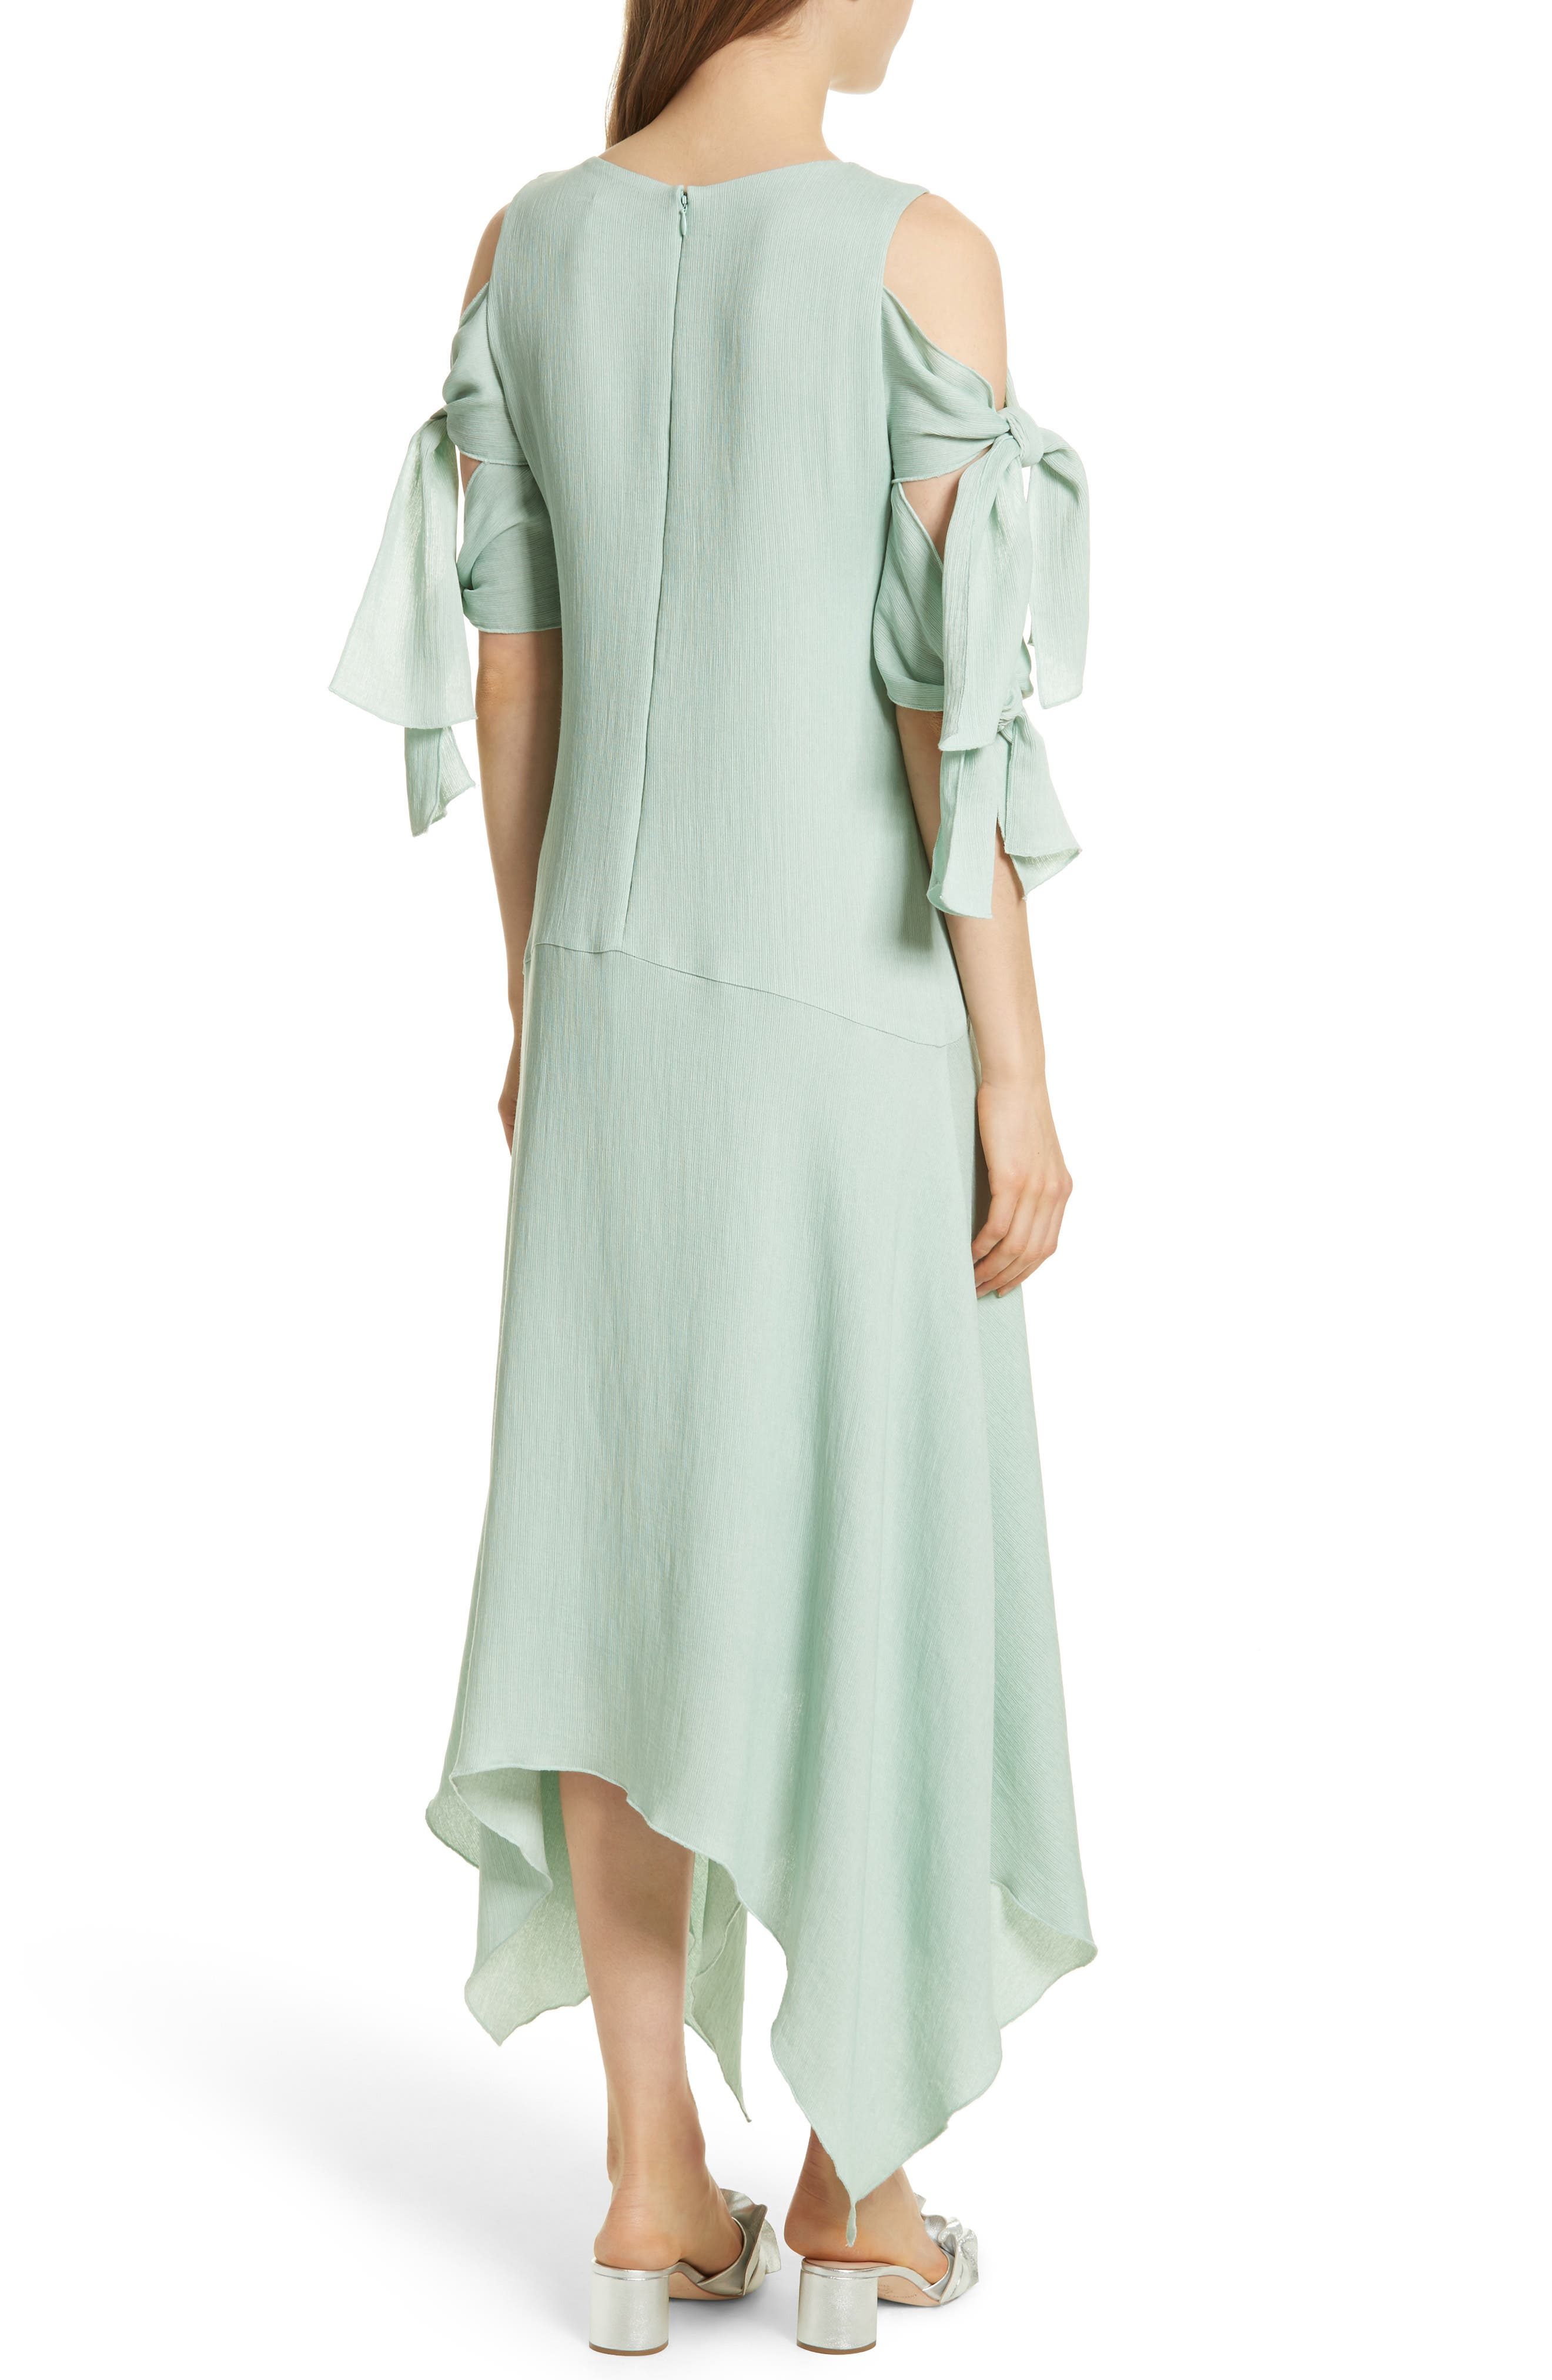 Prose & Poetry Vivianna Drop Waist Midi Dress,                             Alternate thumbnail 2, color,                             Aqua Foam